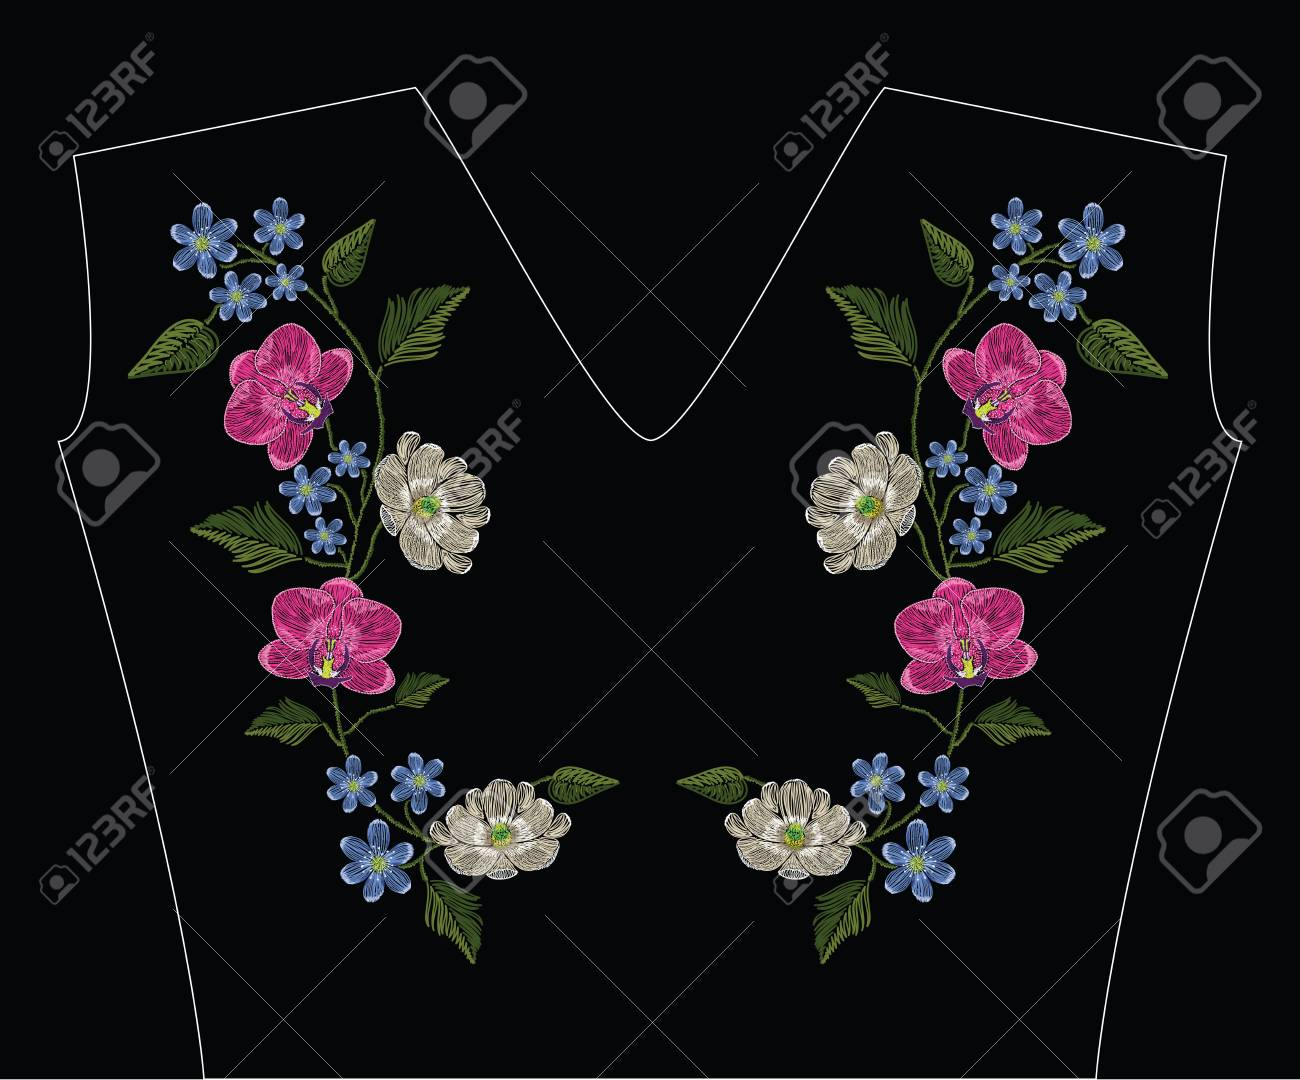 Embroidery stitches with orchid, magnolia and hepatica flower. Decoupage. Vector fashion ornament on black background for traditional floral decoration. Pattern for textile and fabrics. Print for textile. - 82151580